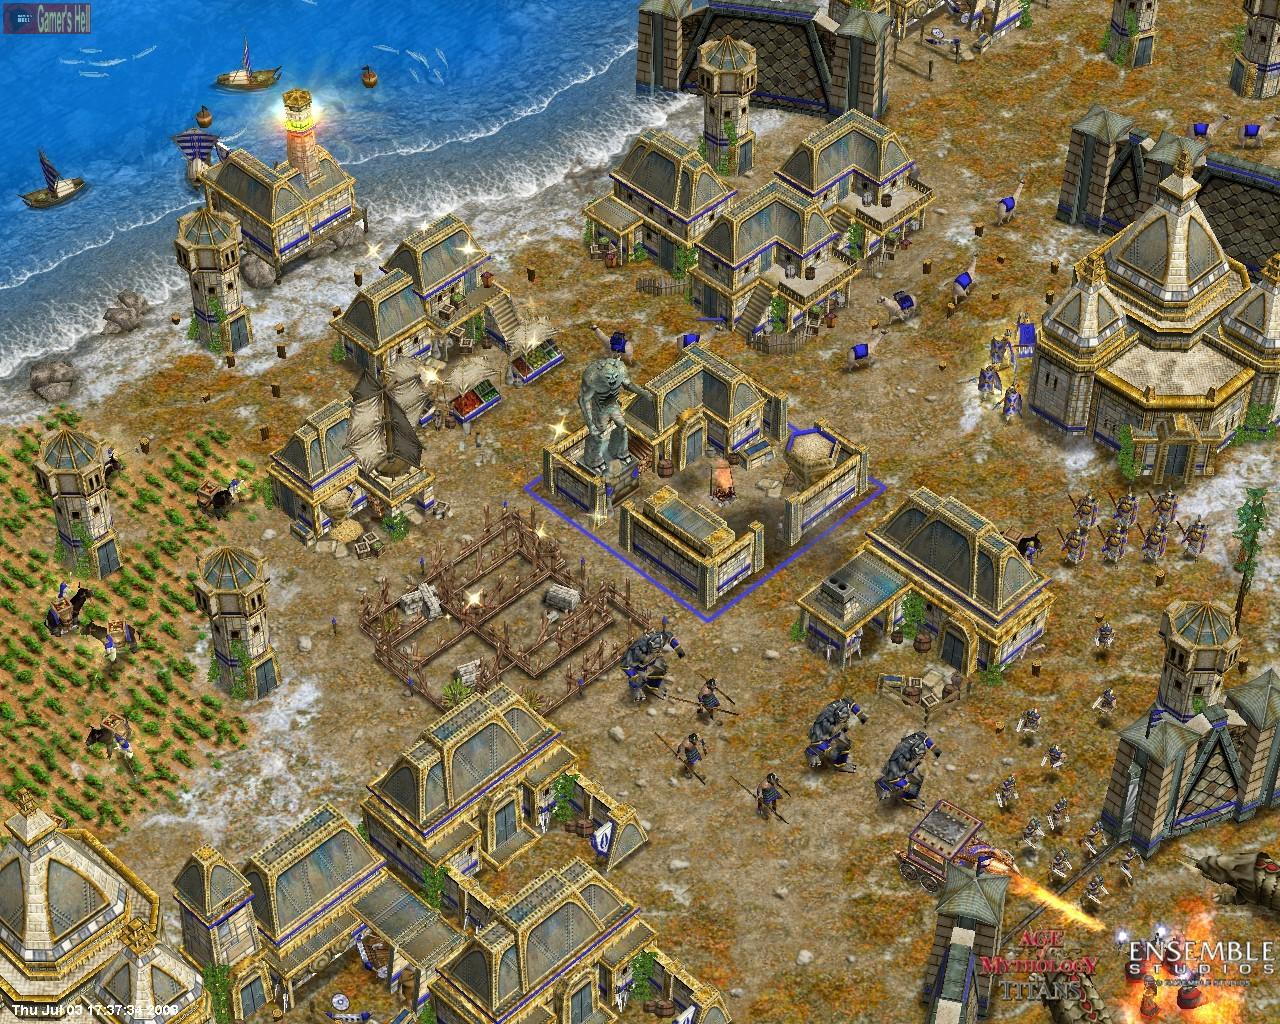 age of mythology free download full version for windows 8